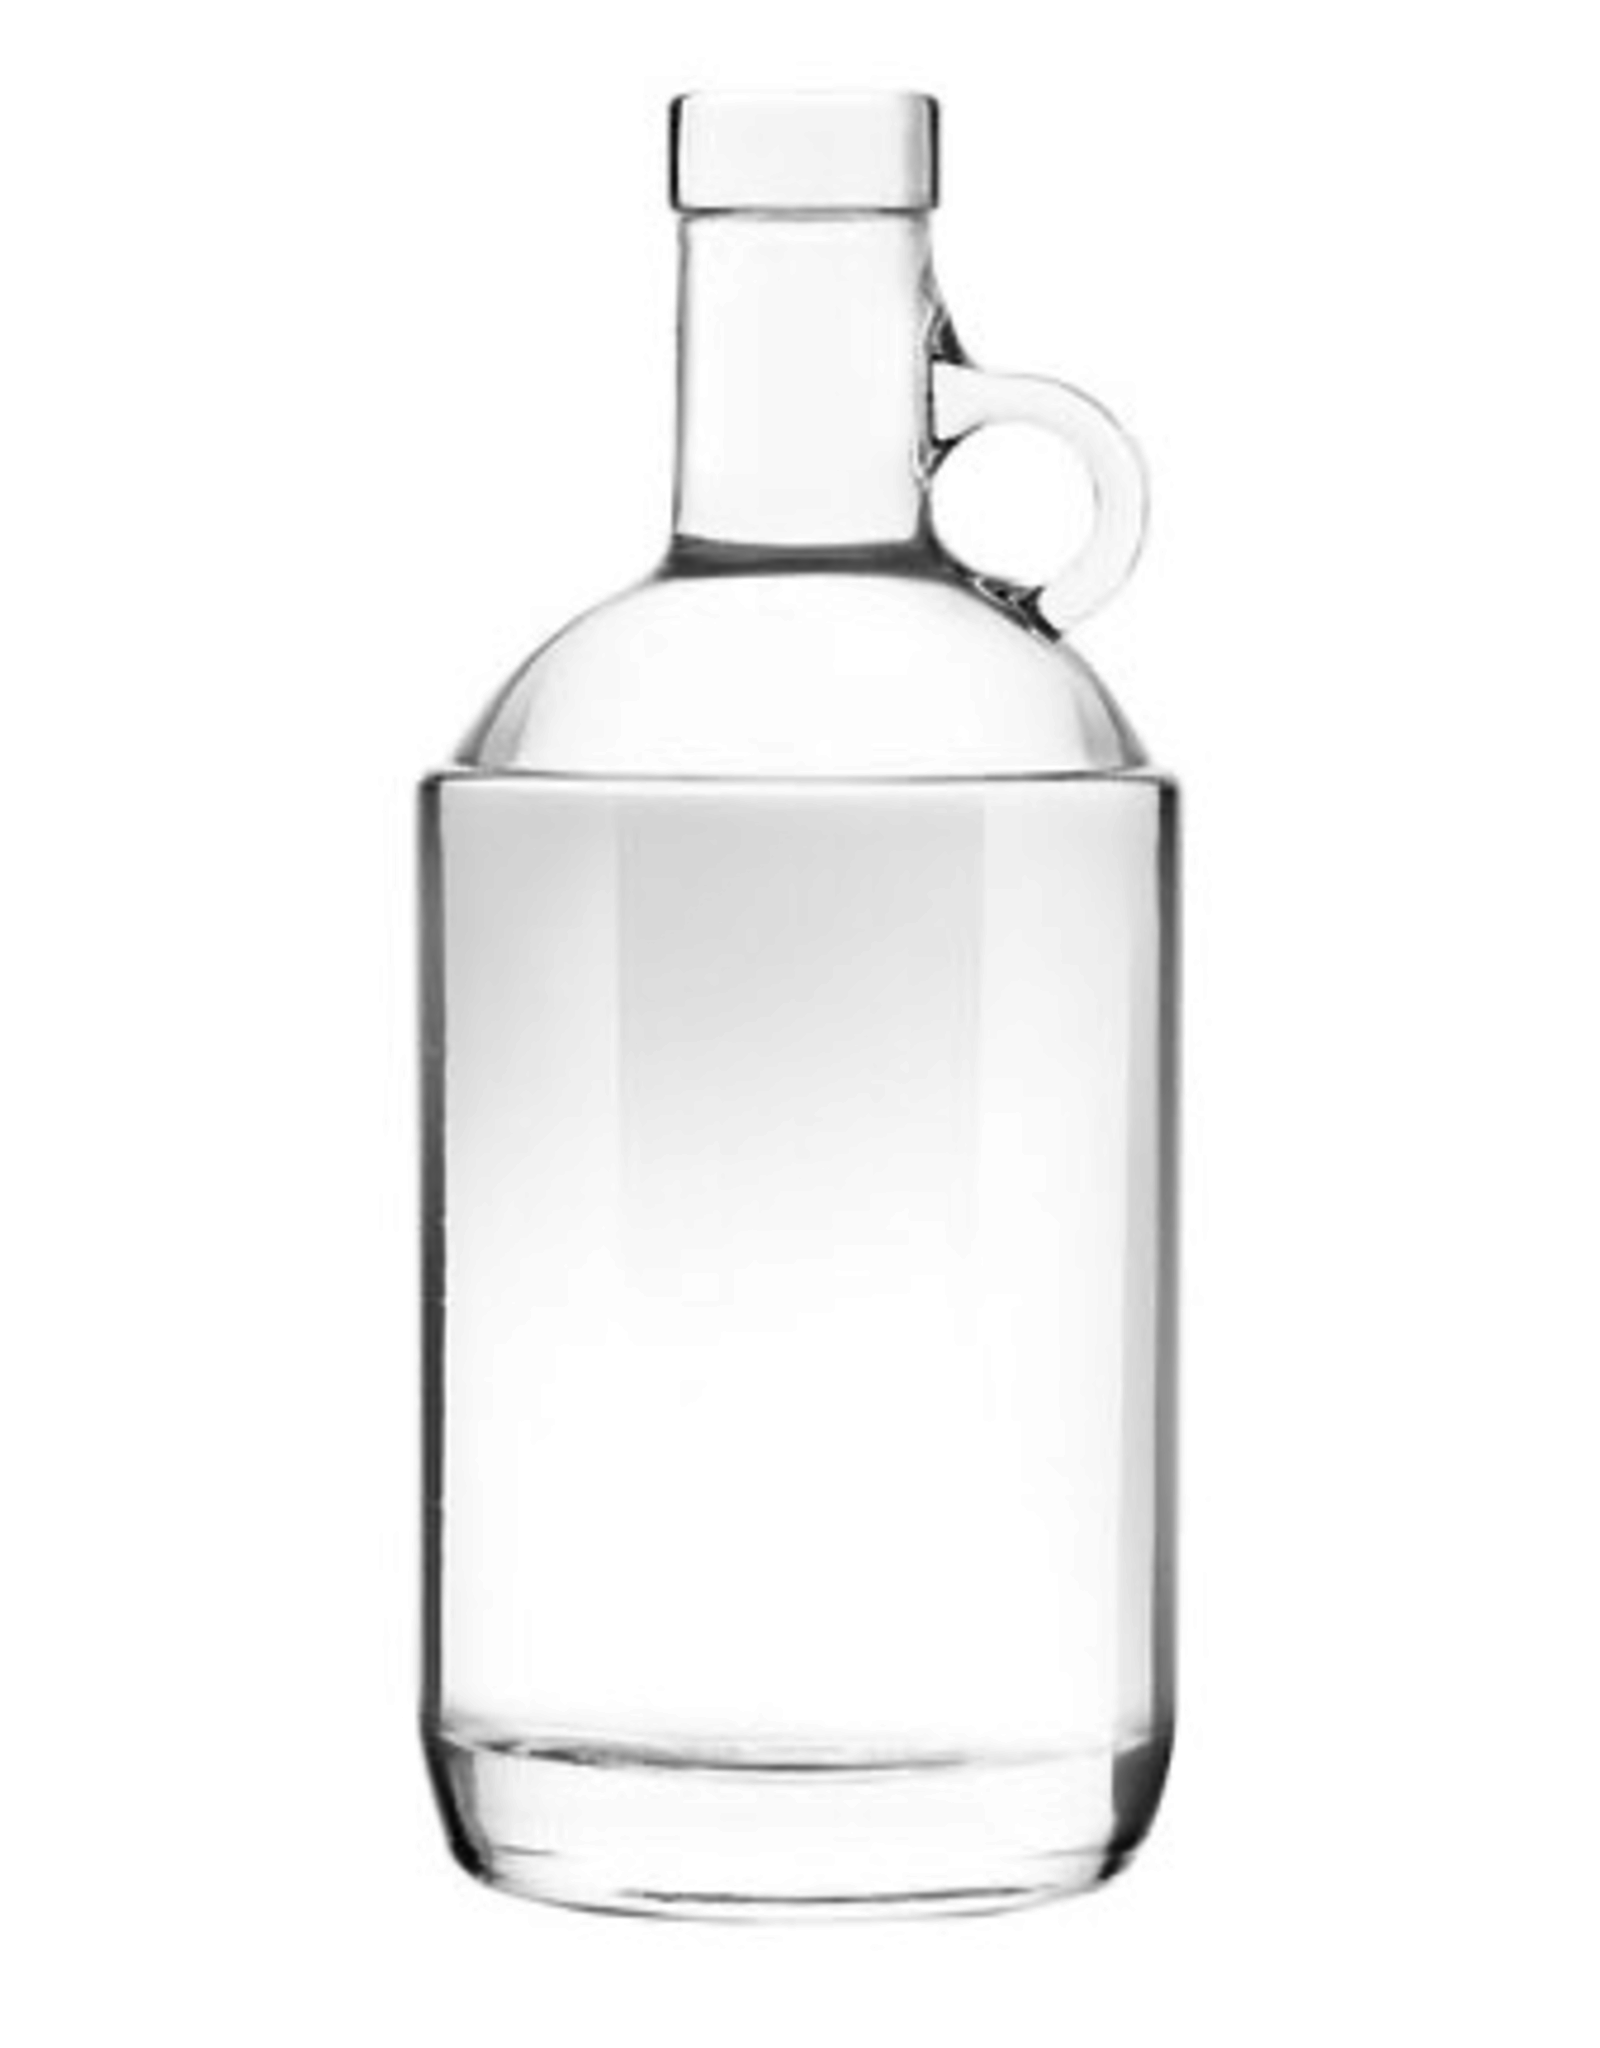 LD CARLSON Bottle Specs<br /> Capacity: 375mL<br /> Weight: 16.03 oz<br /> Bottom: Flat Bottom<br /> Height: 7.034 in<br /> Base Width: 3.004 in<br /> Label Panel: 3.577<br /> Color: Flint<br /> Uses cork #4250.